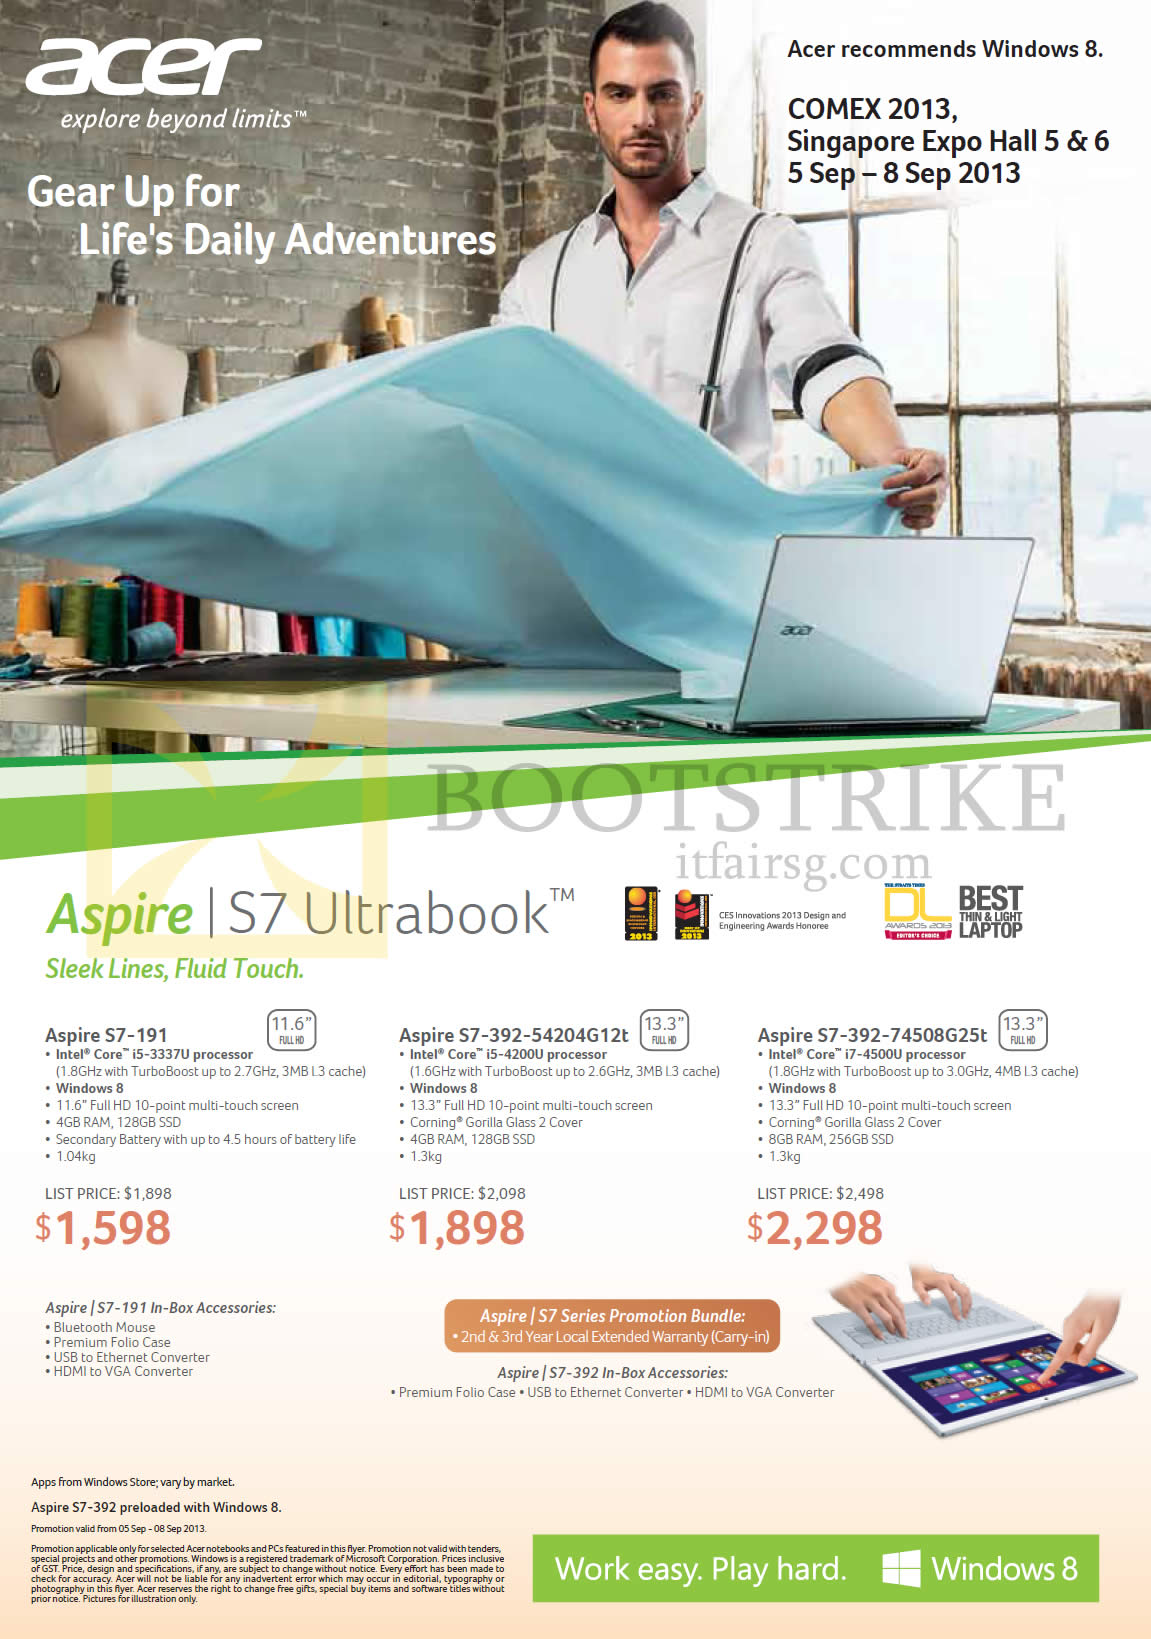 COMEX 2013 price list image brochure of Acer Notebooks Aspire S7-191, S7-392-54204G12t, S7-392-74508G25t